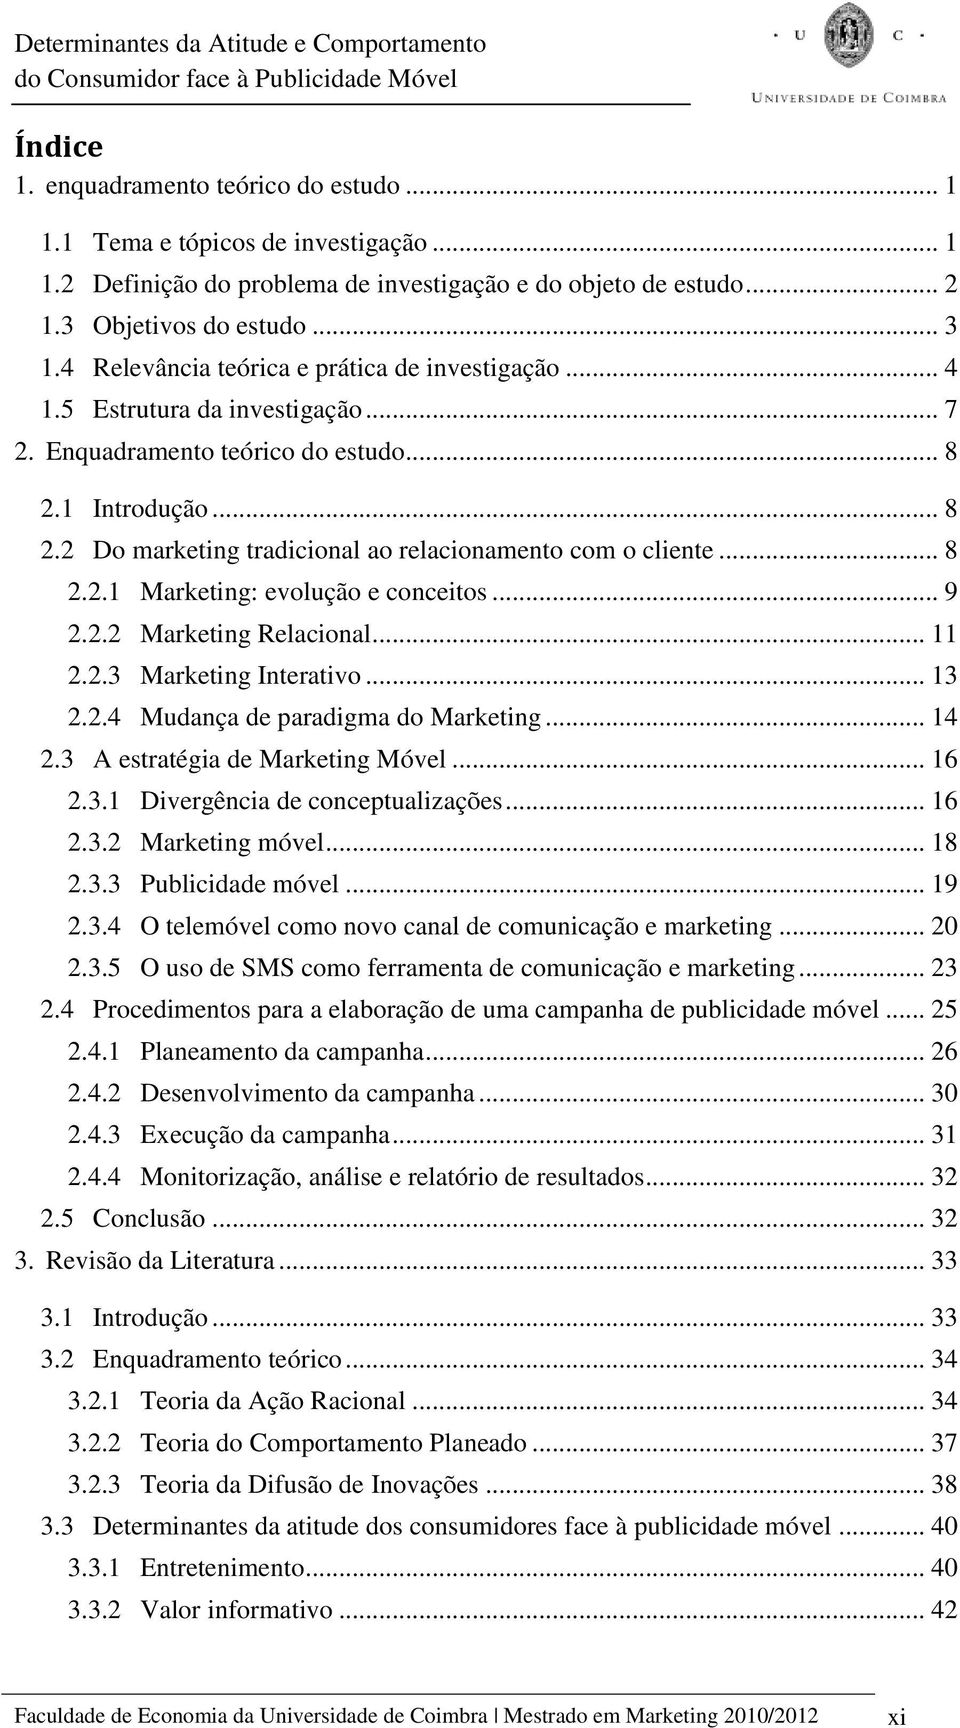 .. 8 2.2.1 Marketing: evolução e conceitos... 9 2.2.2 Marketing Relacional... 11 2.2.3 Marketing Interativo... 13 2.2.4 Mudança de paradigma do Marketing... 14 2.3 A estratégia de Marketing Móvel.